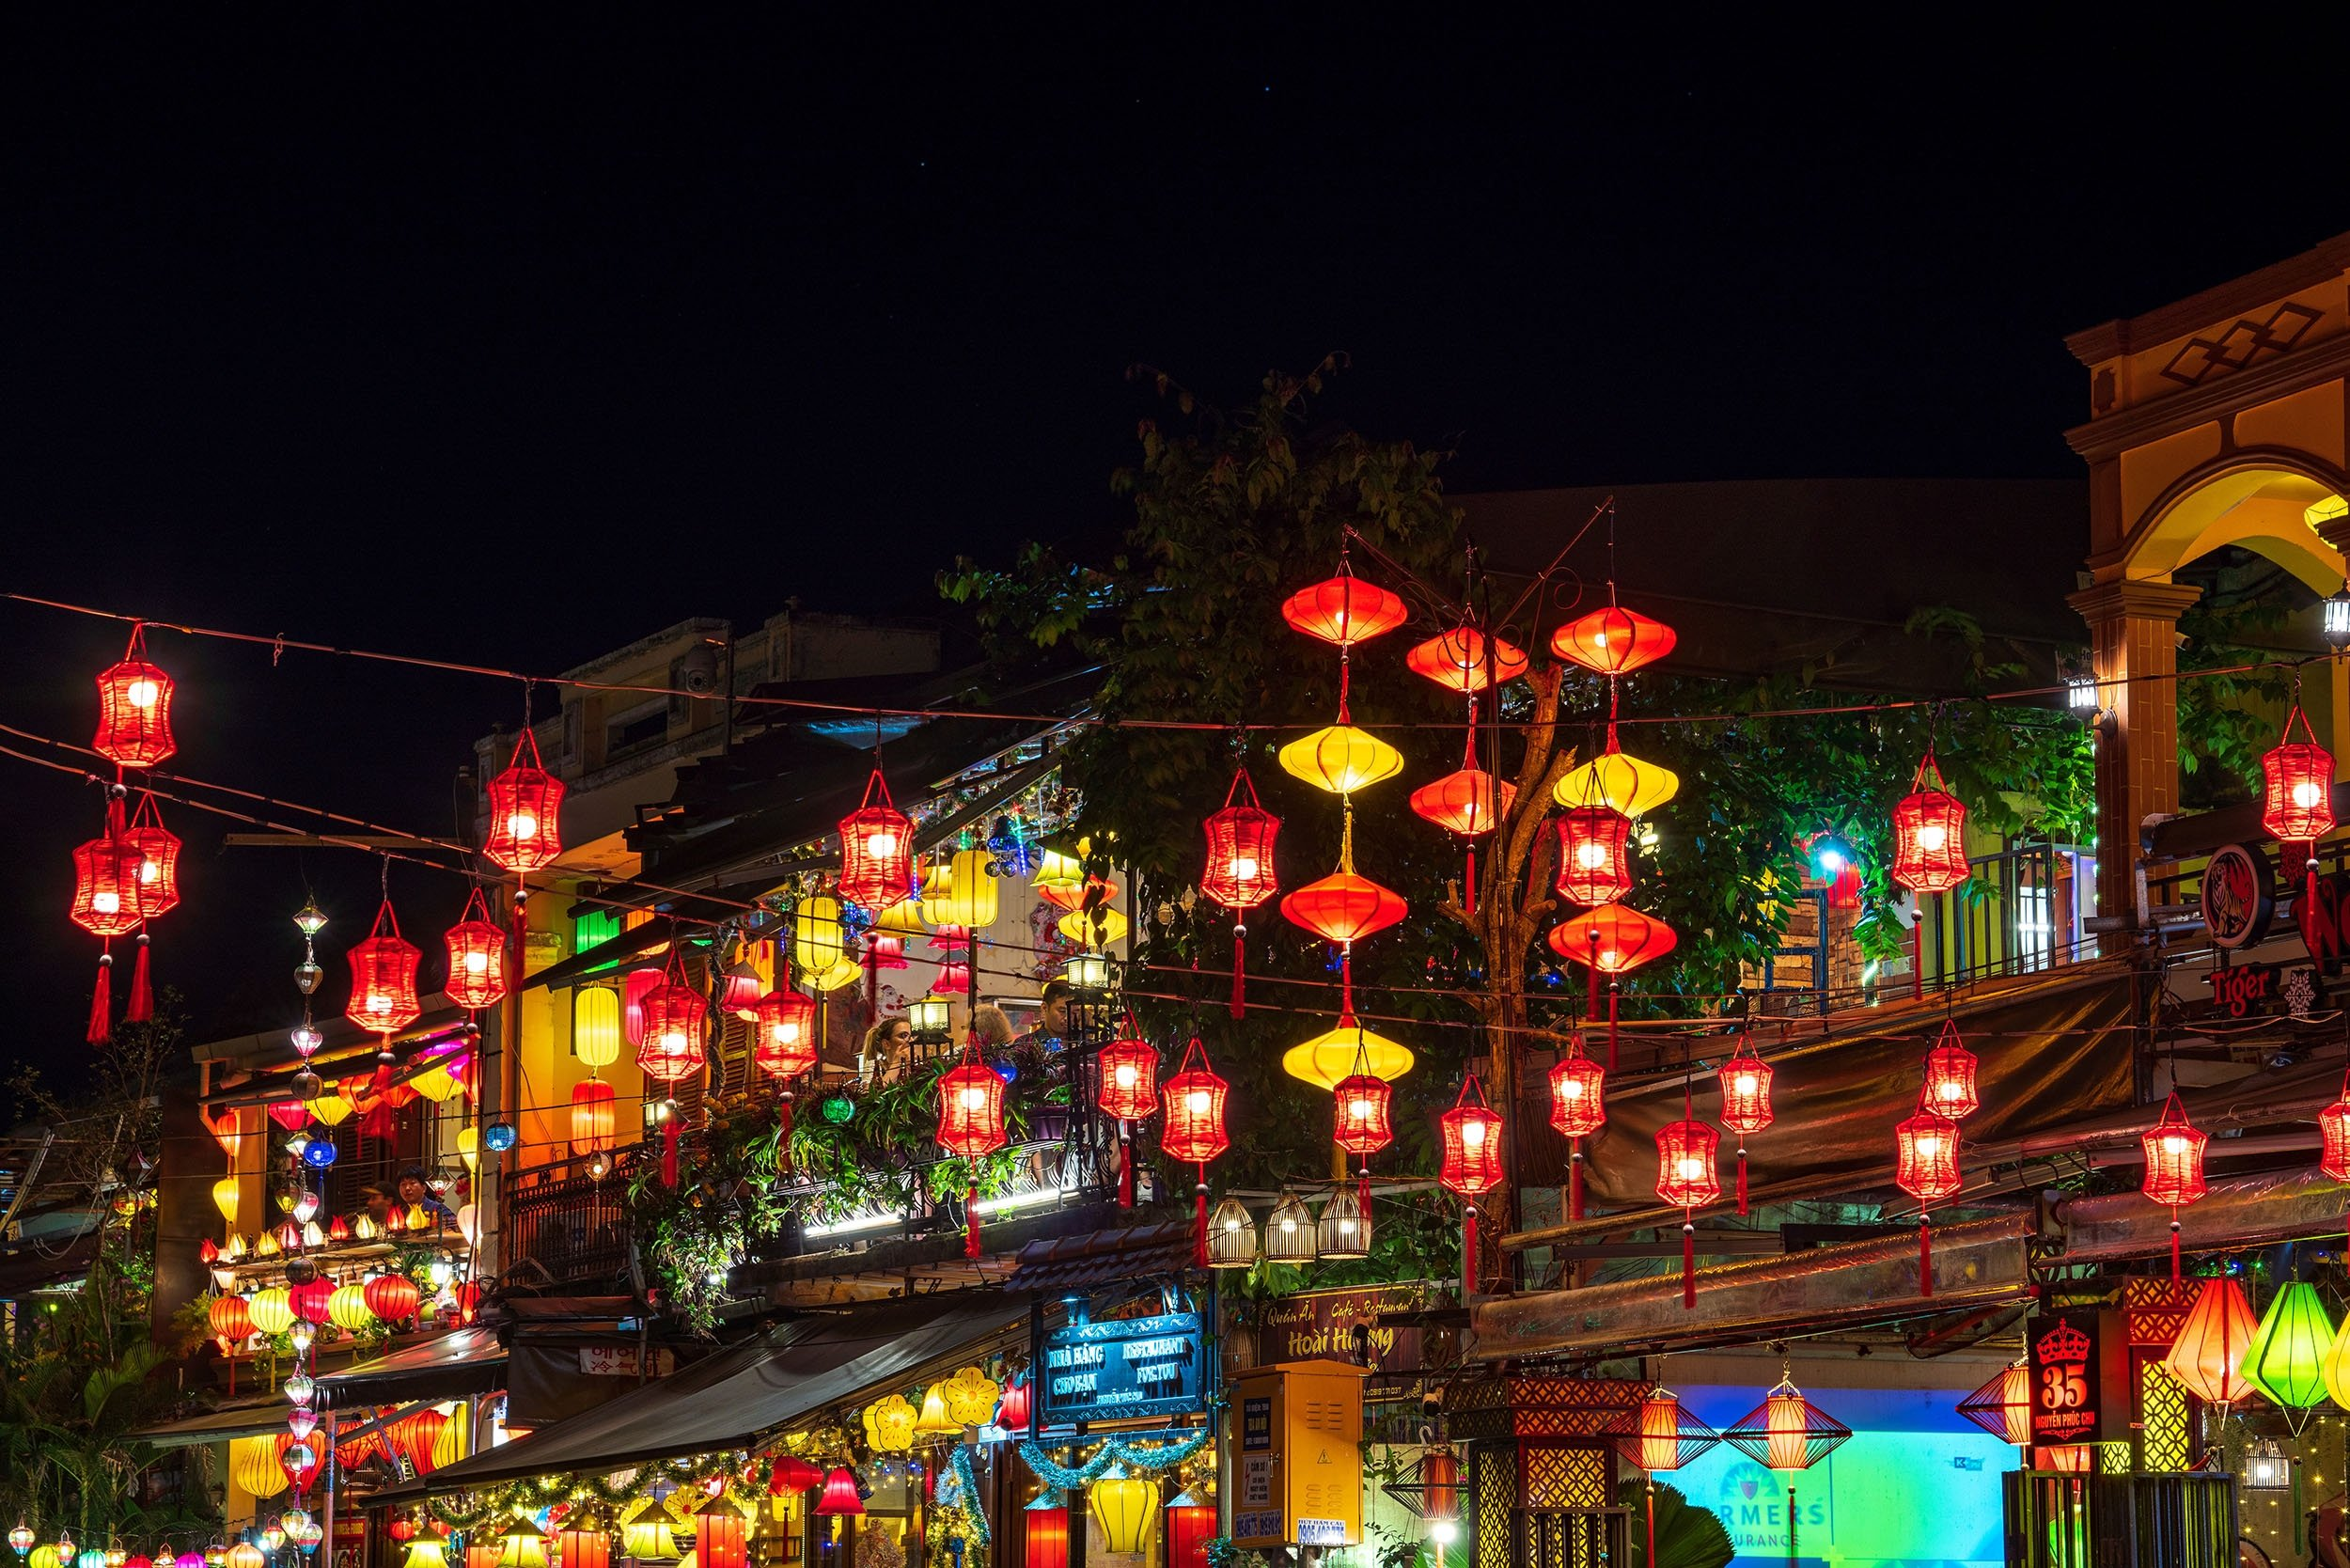 Colorful lanterns light the nightscape of the Old Town part of Hoi An, Vietnam.(Shutterstock Photo)